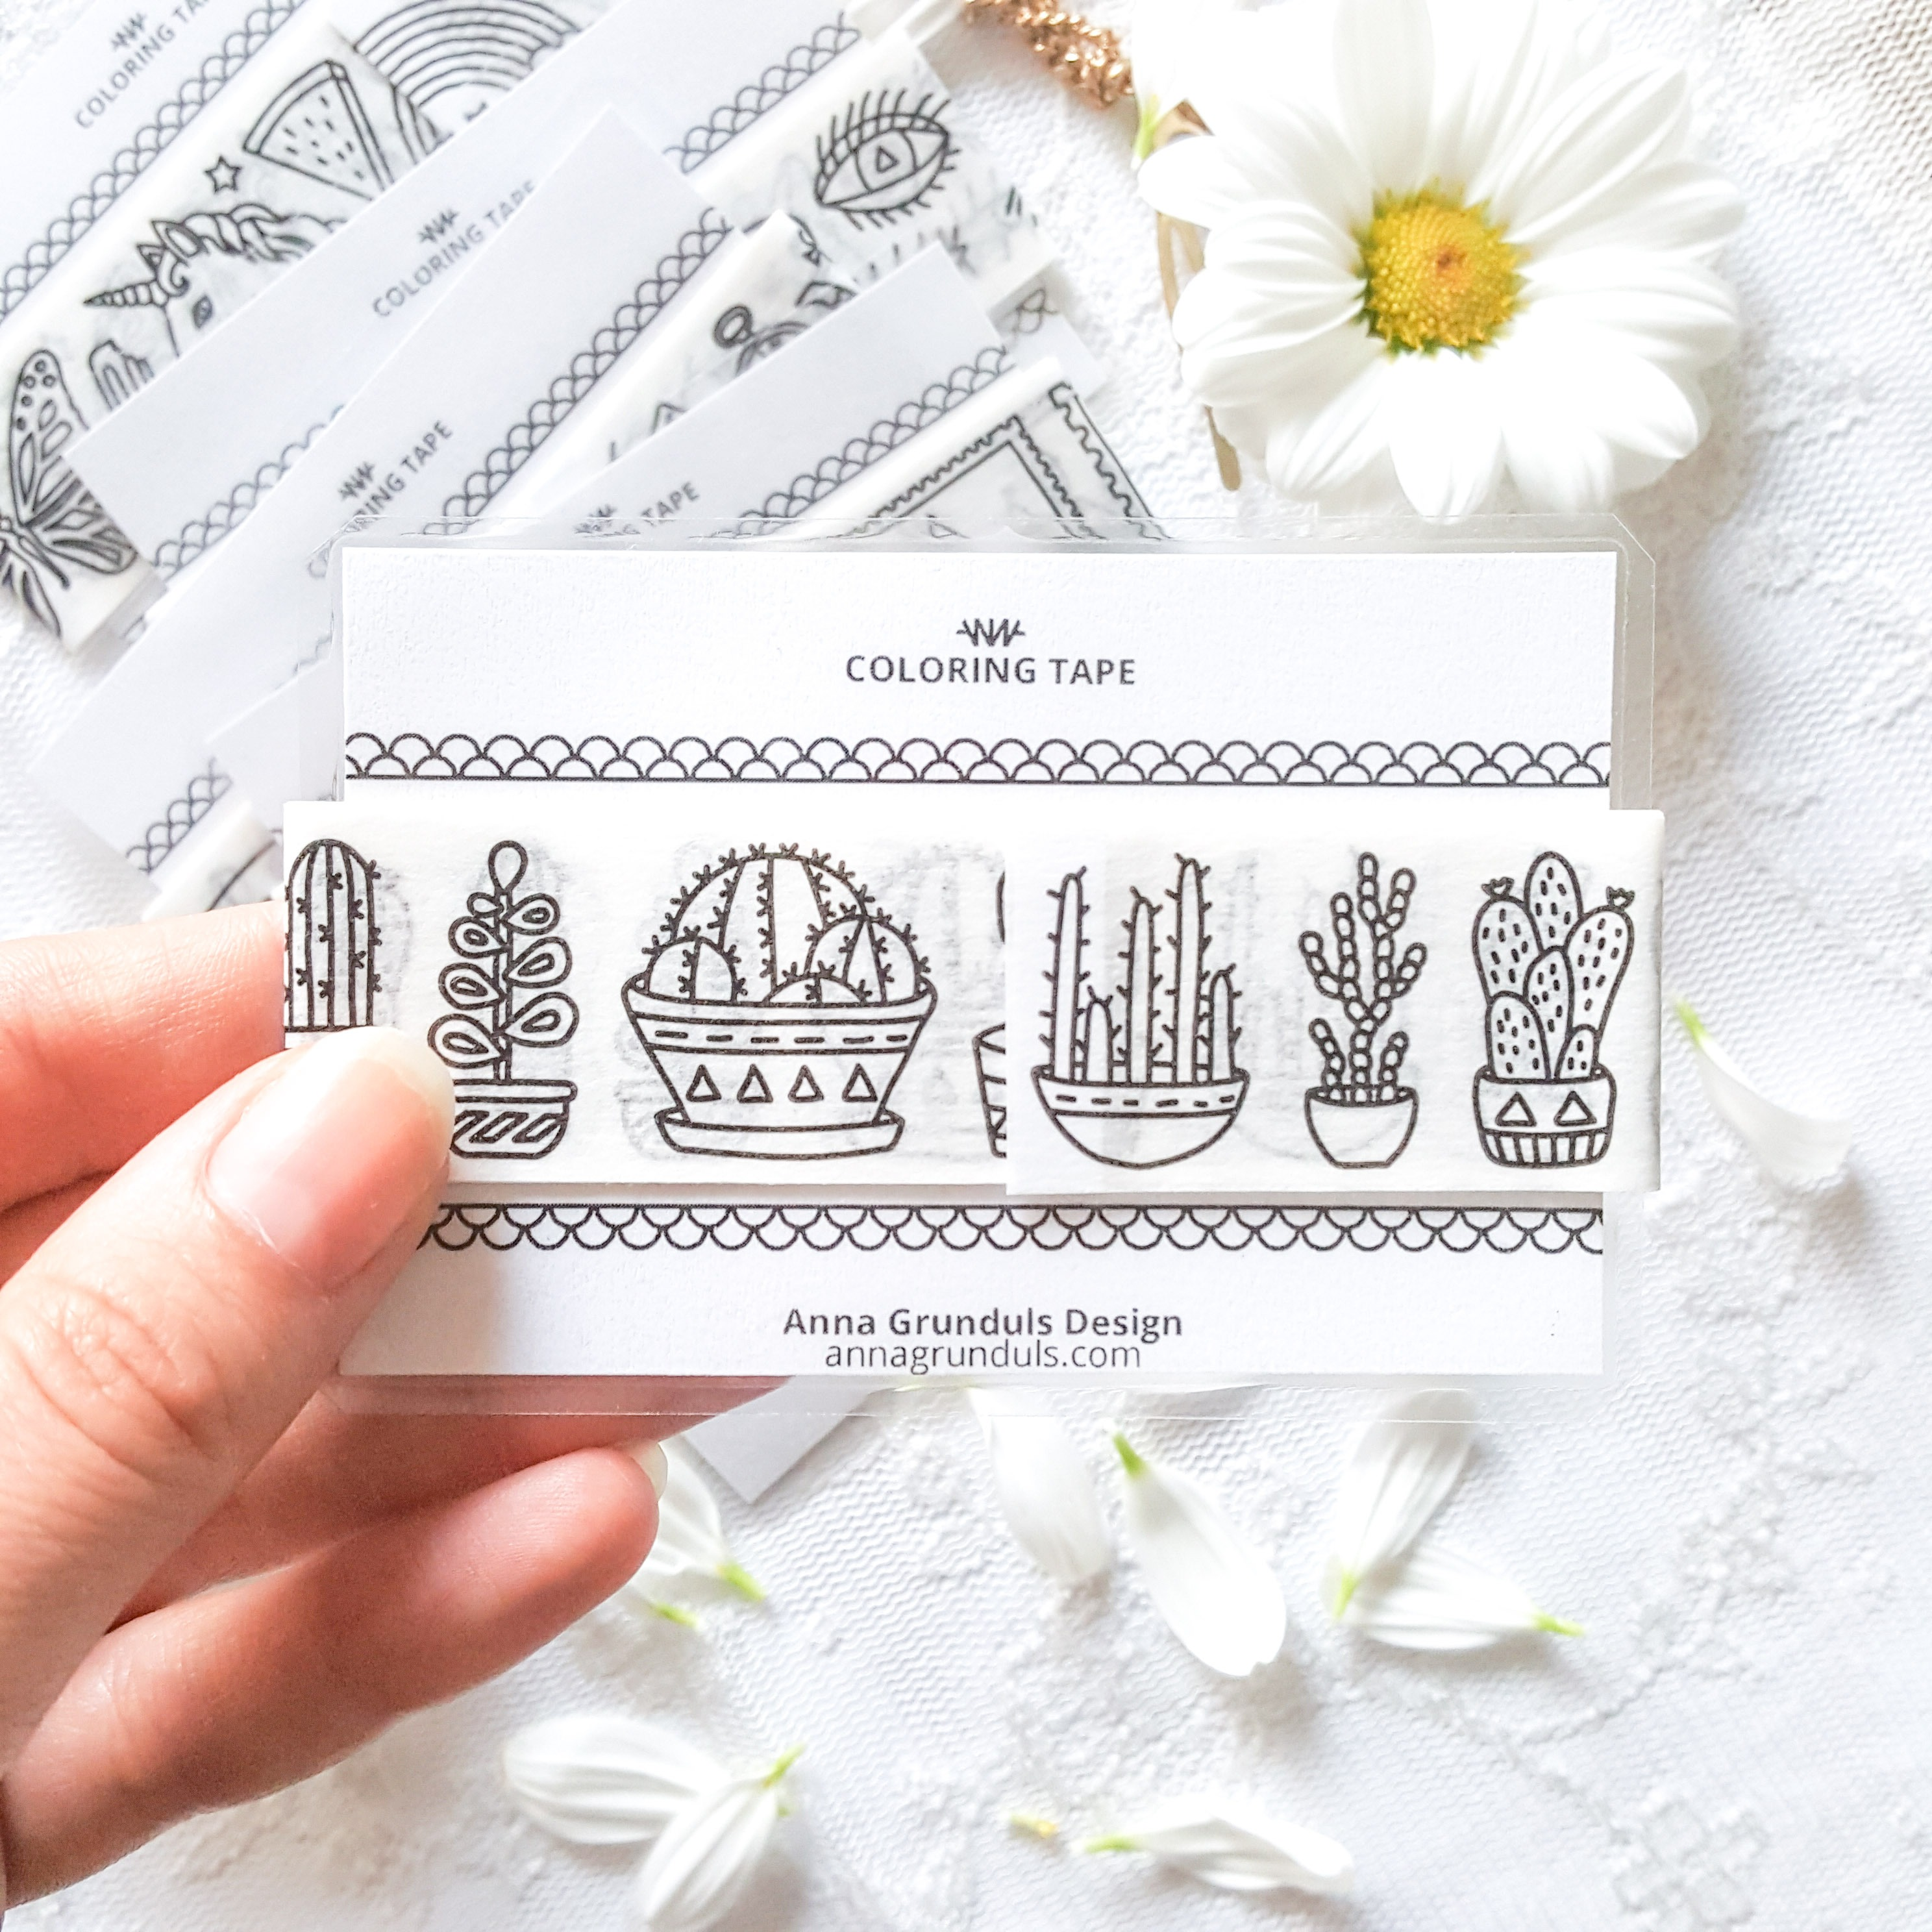 cacti and succulents coloring tape sample card washi tape